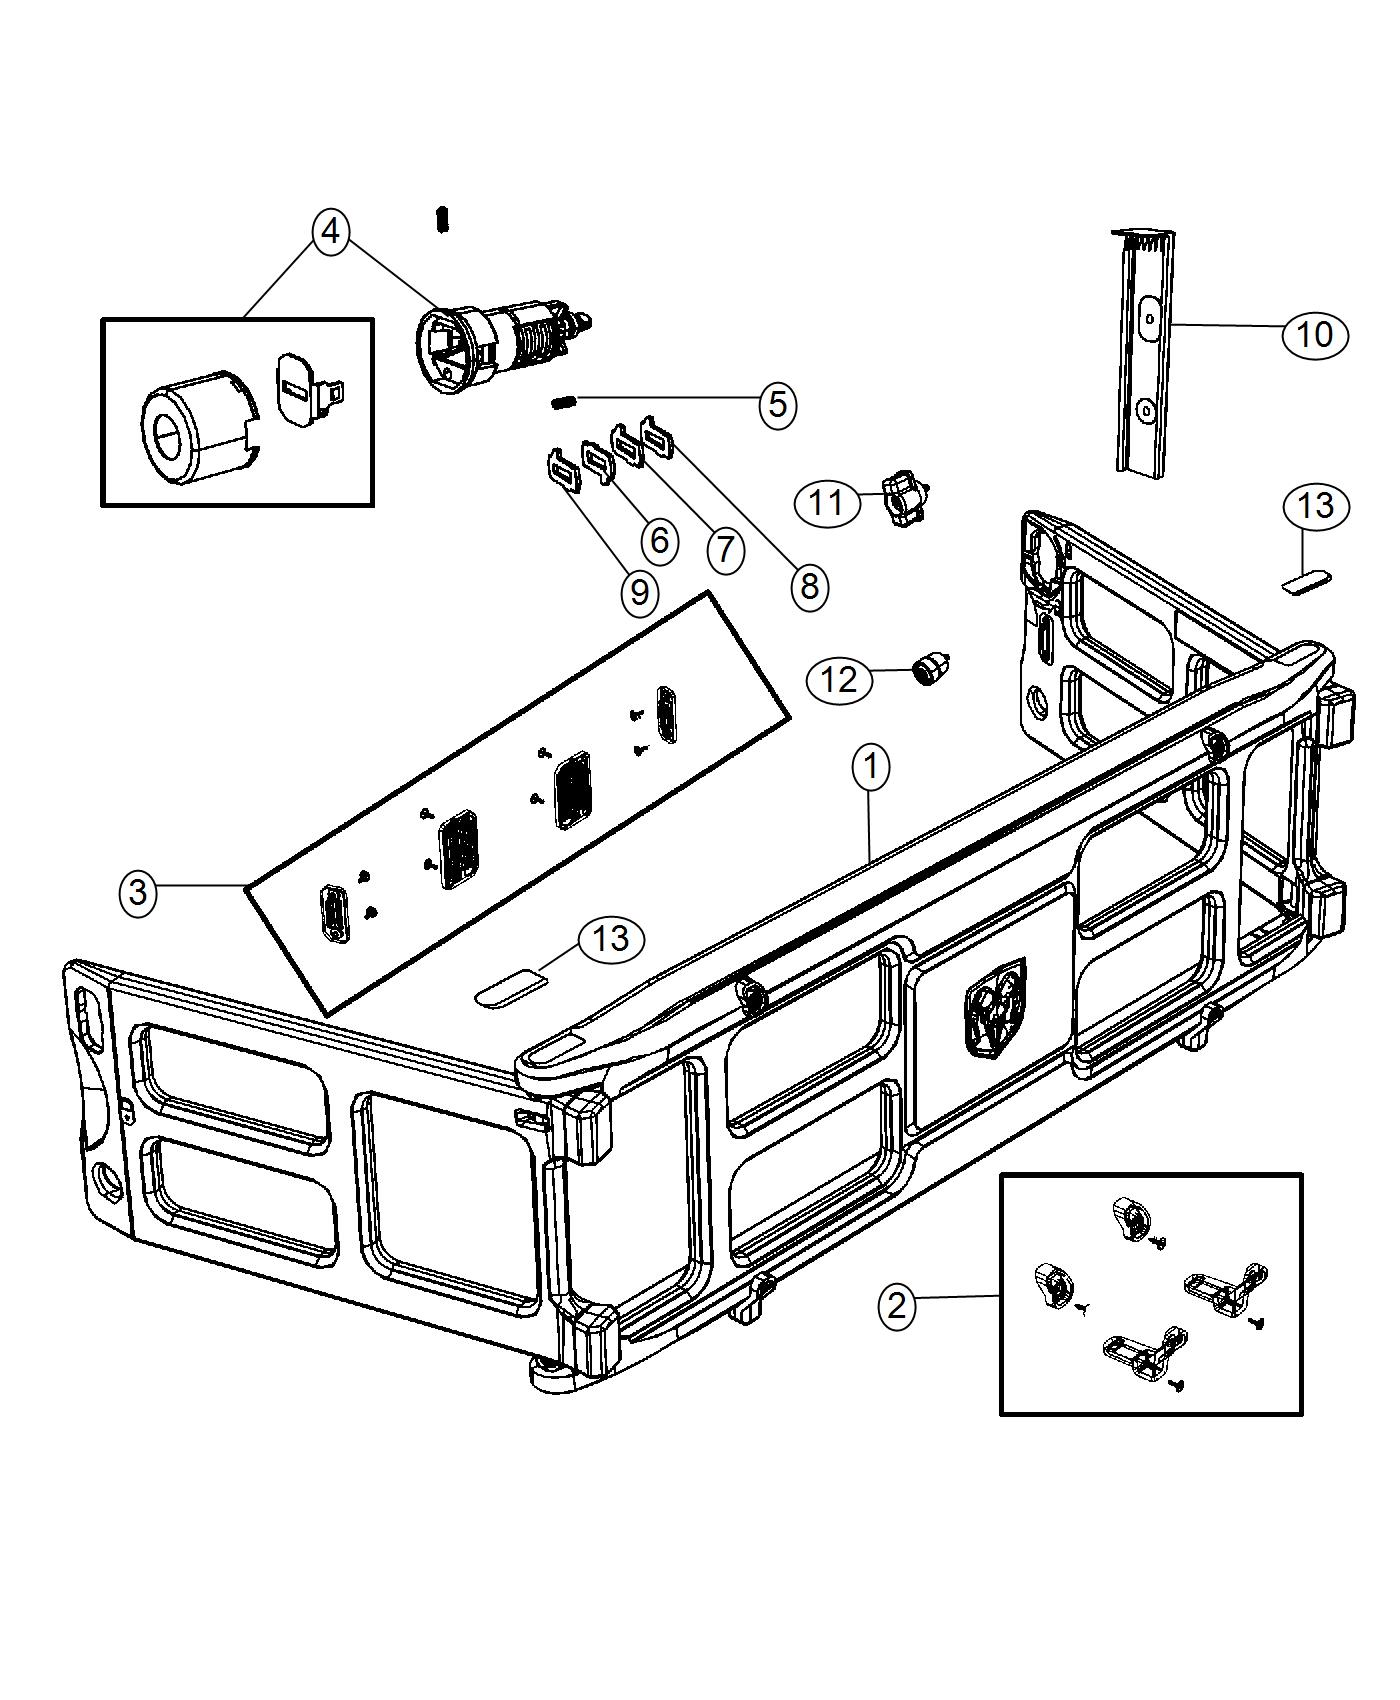 2016 Ram 2500 Panel. Pickup box extension. [truck bed